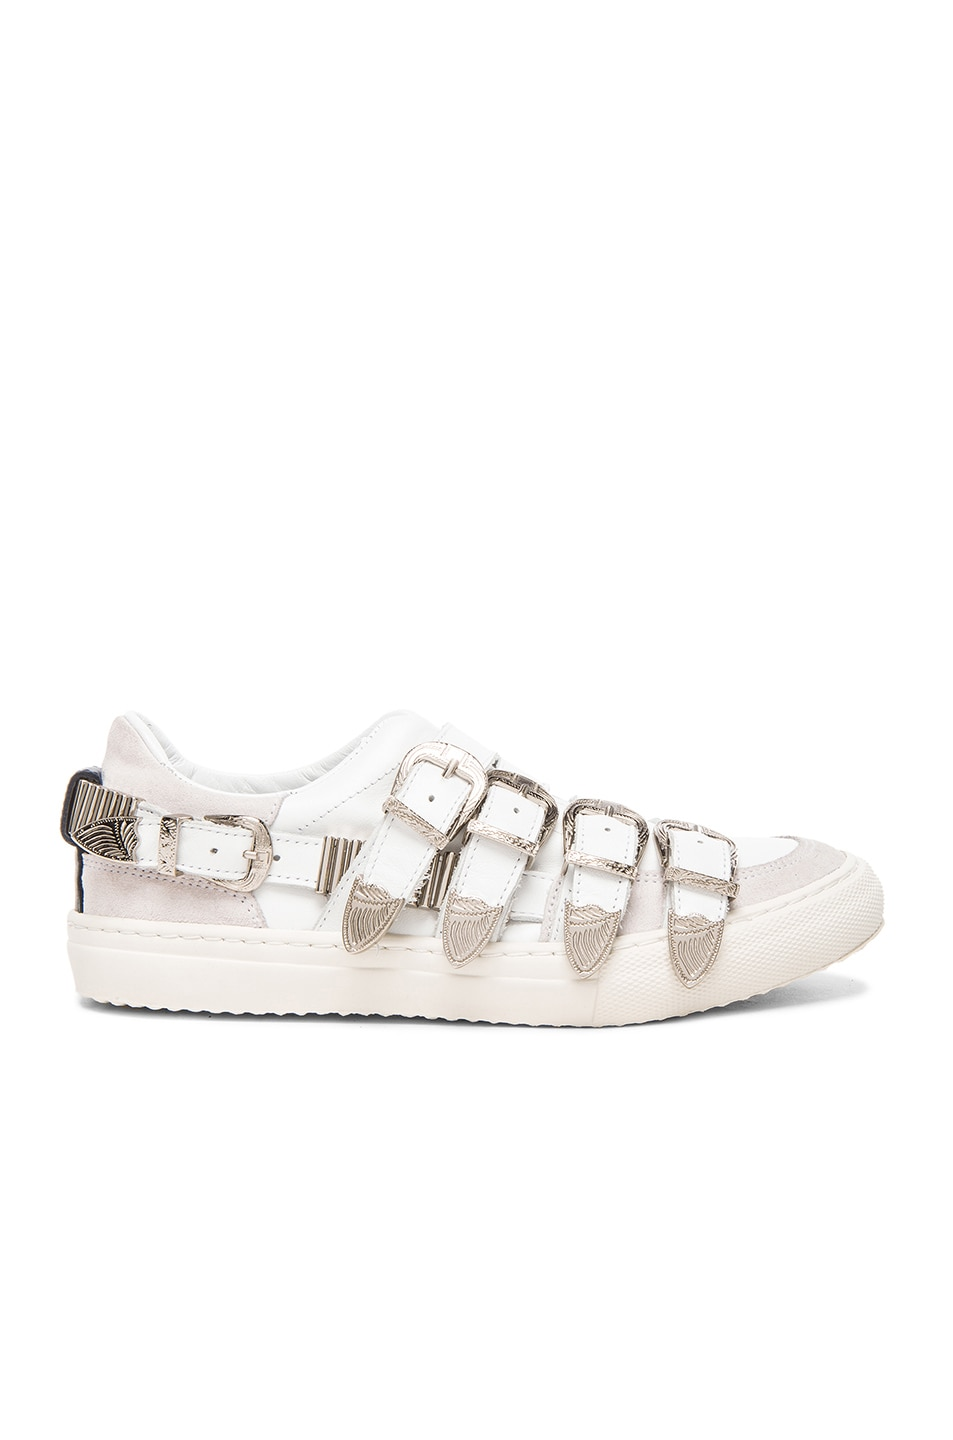 White Leather Sneakers Toga Archives nCMmXk